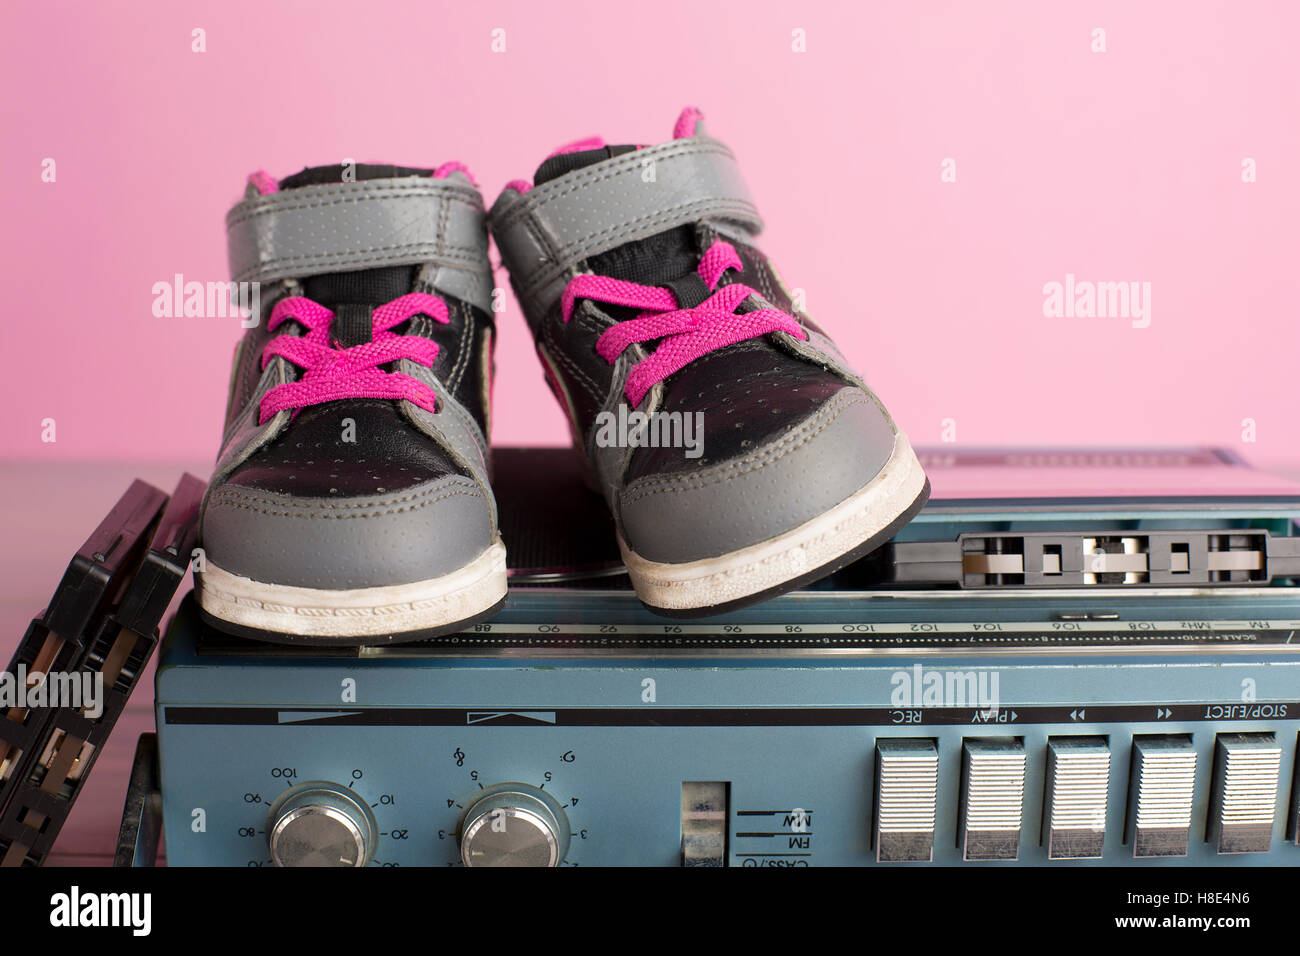 portrait in 80's style of a little child sneakers shoes - Stock Image